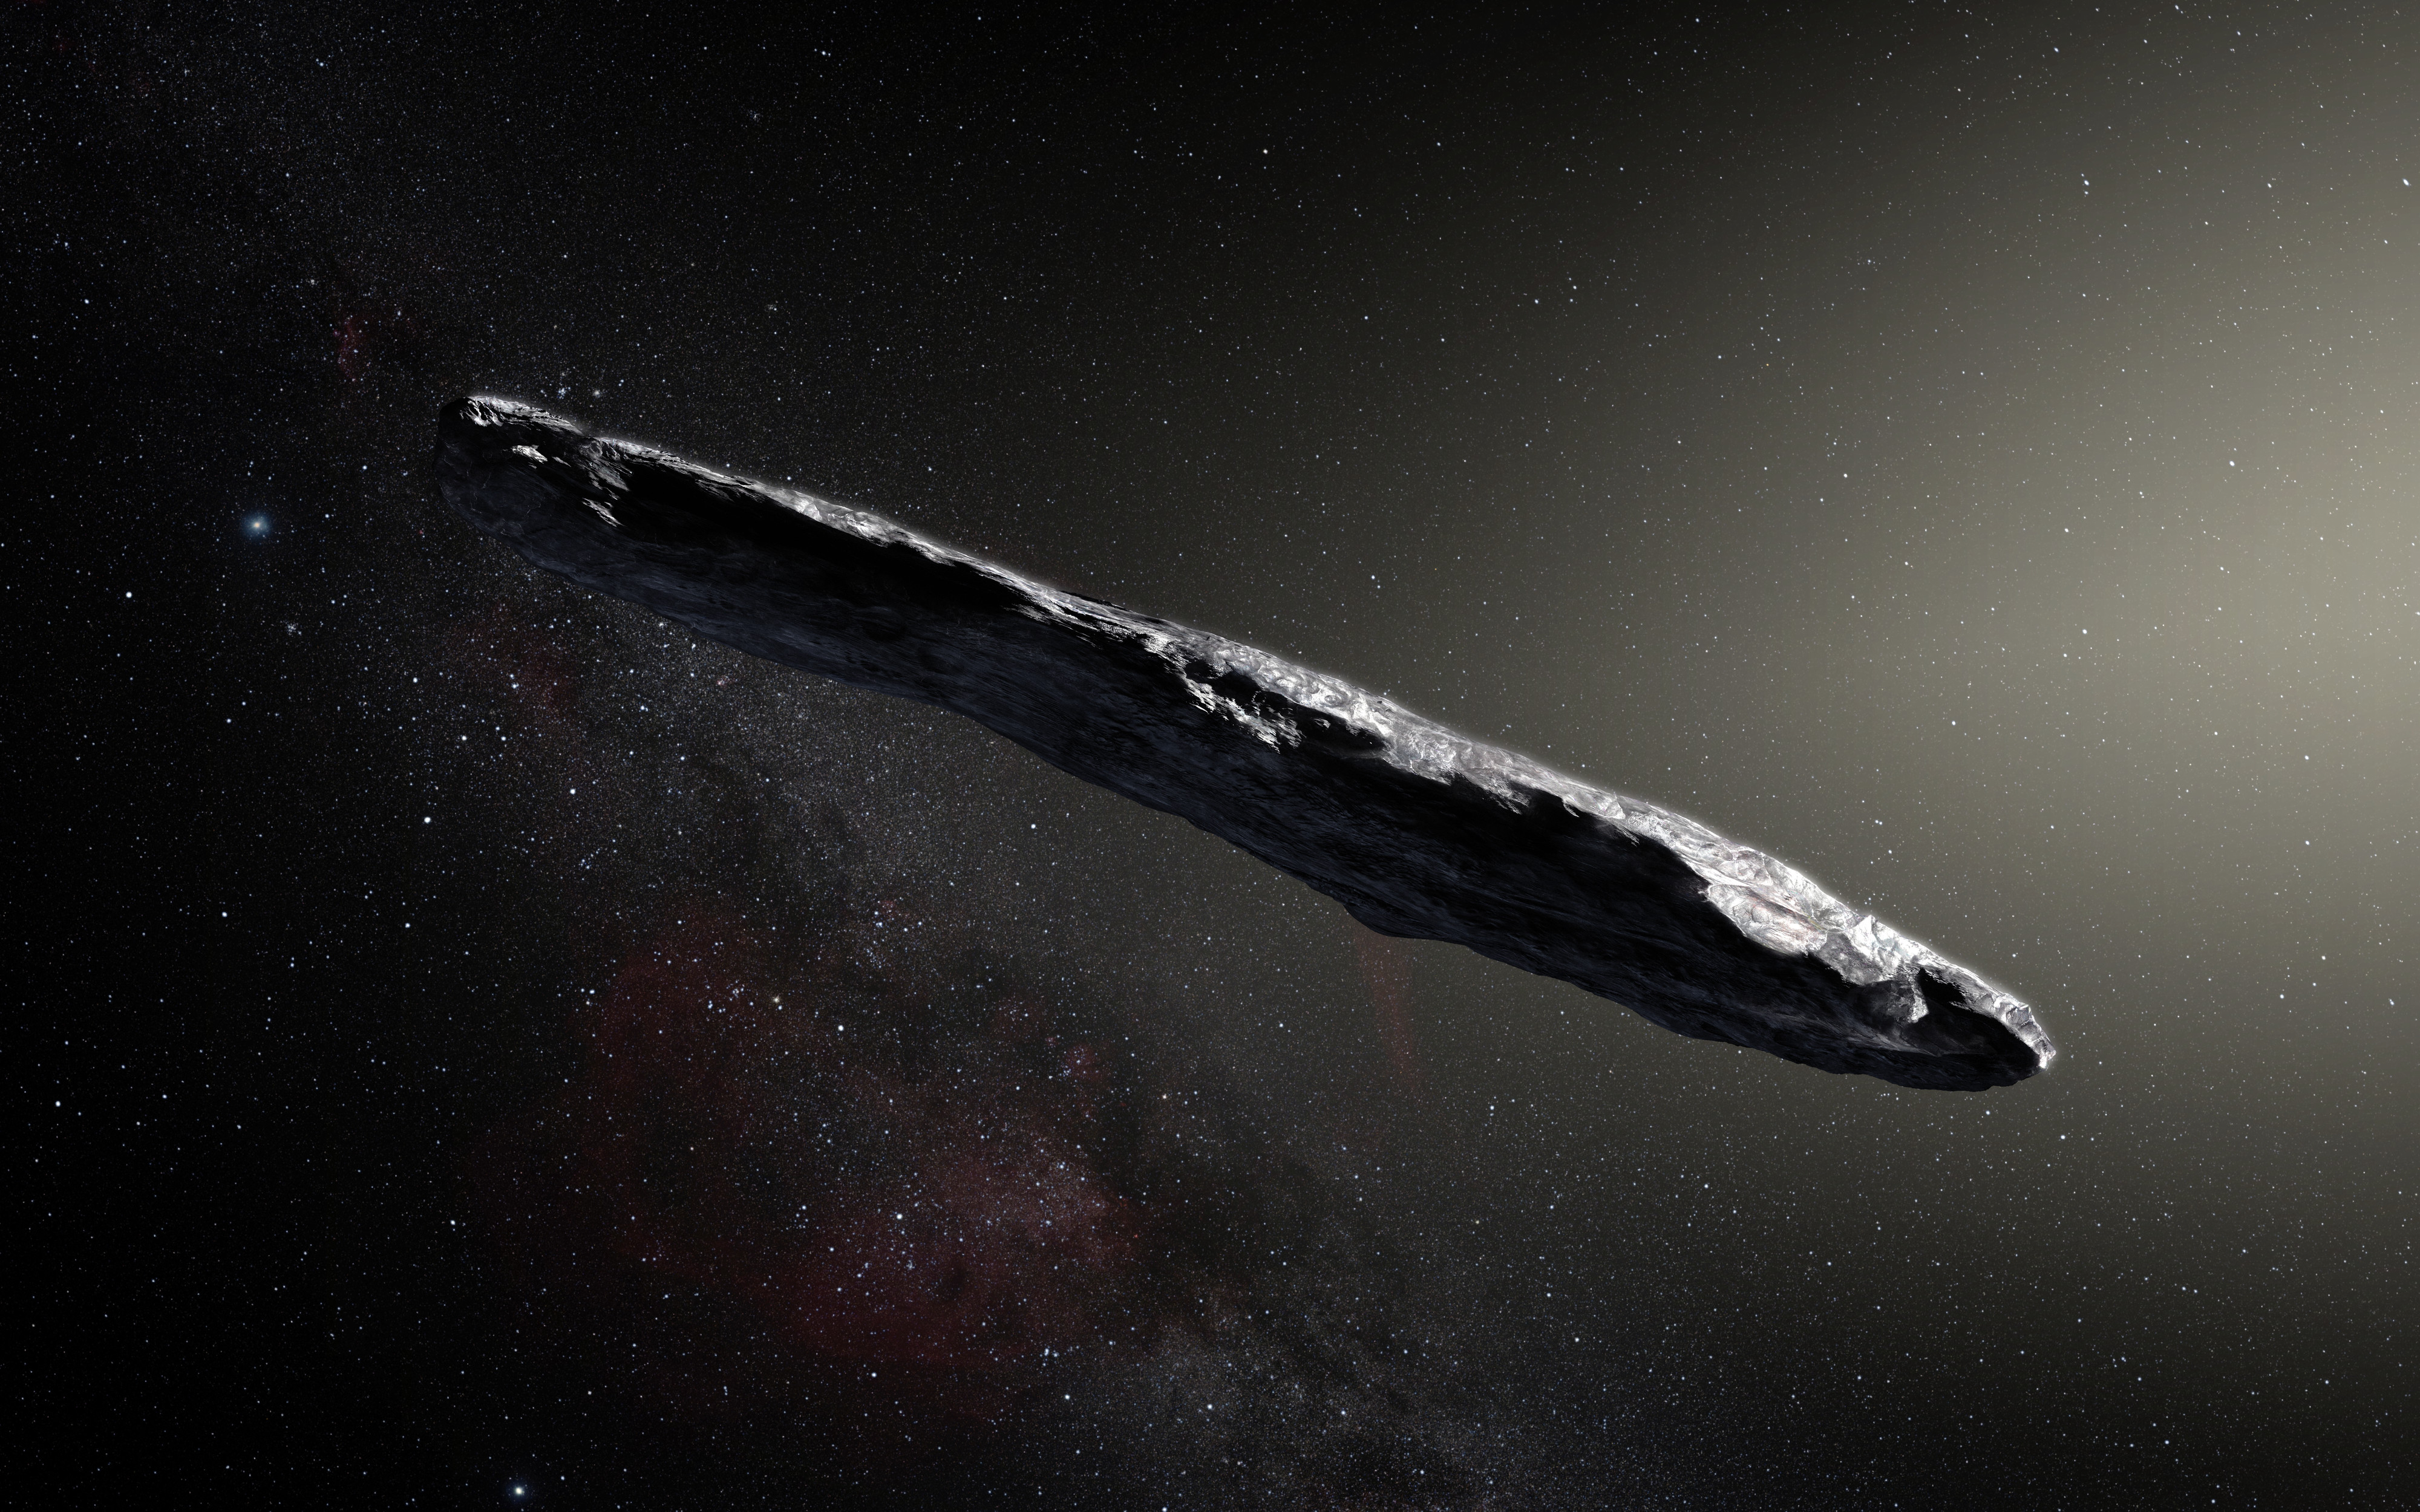 This artist's impression shows the first interstellar asteroid: `Oumuamua. This unique object was discovered on 19 Oct. 2017 by the Pan-STARRS 1 telescope in Hawai`i.